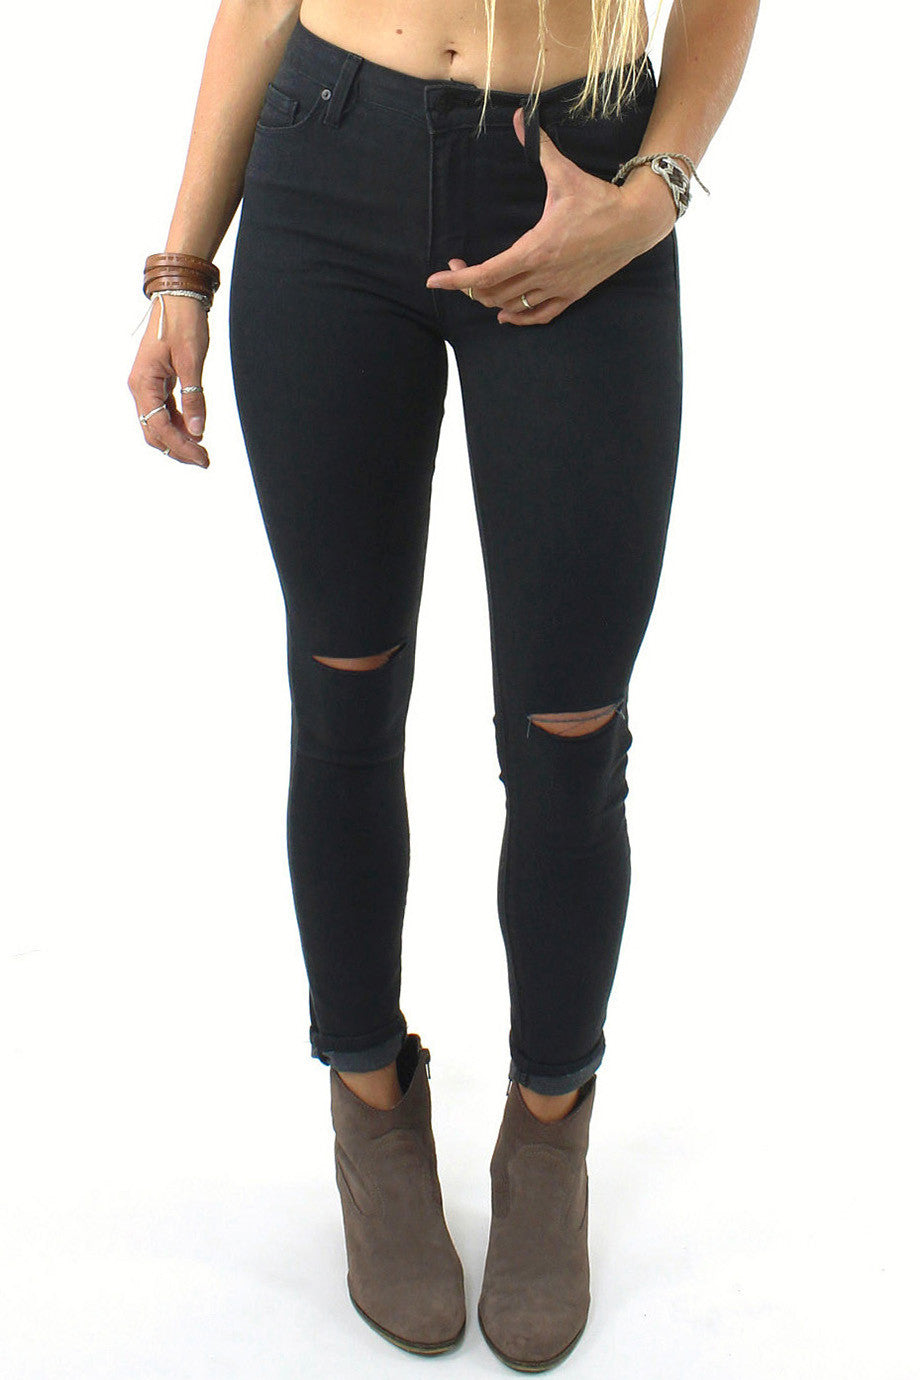 Slit Knee 9 Inch High Rise Skinny Jean / Black